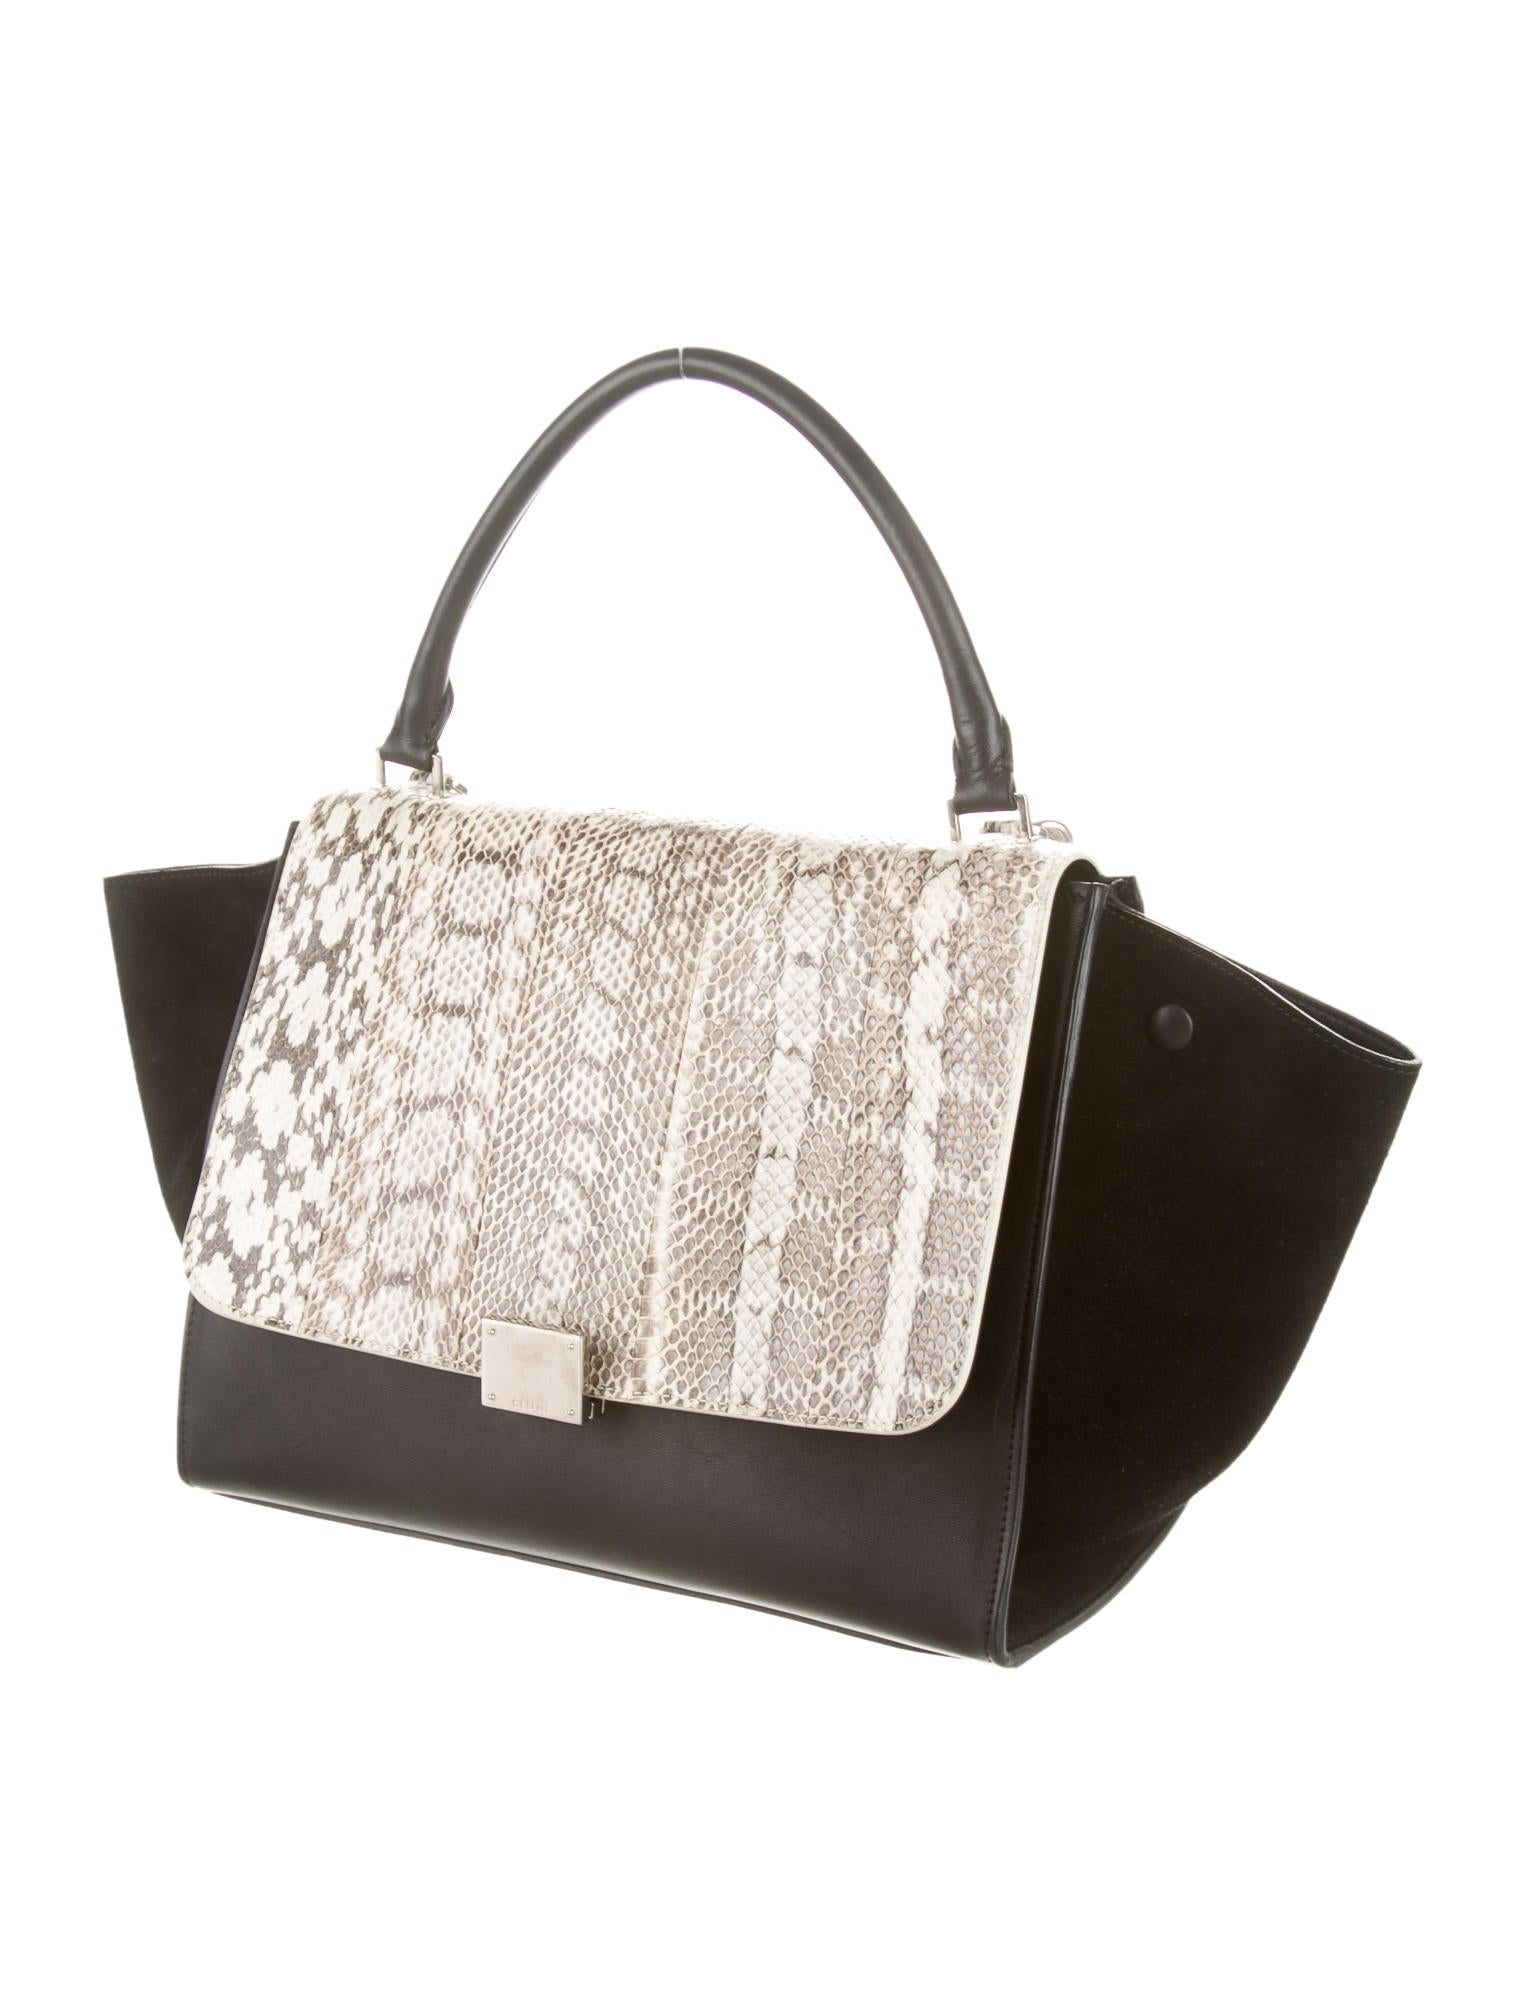 mini belt bag celine - celine snakeskin mini trapeze bag, buy celine luggage tote